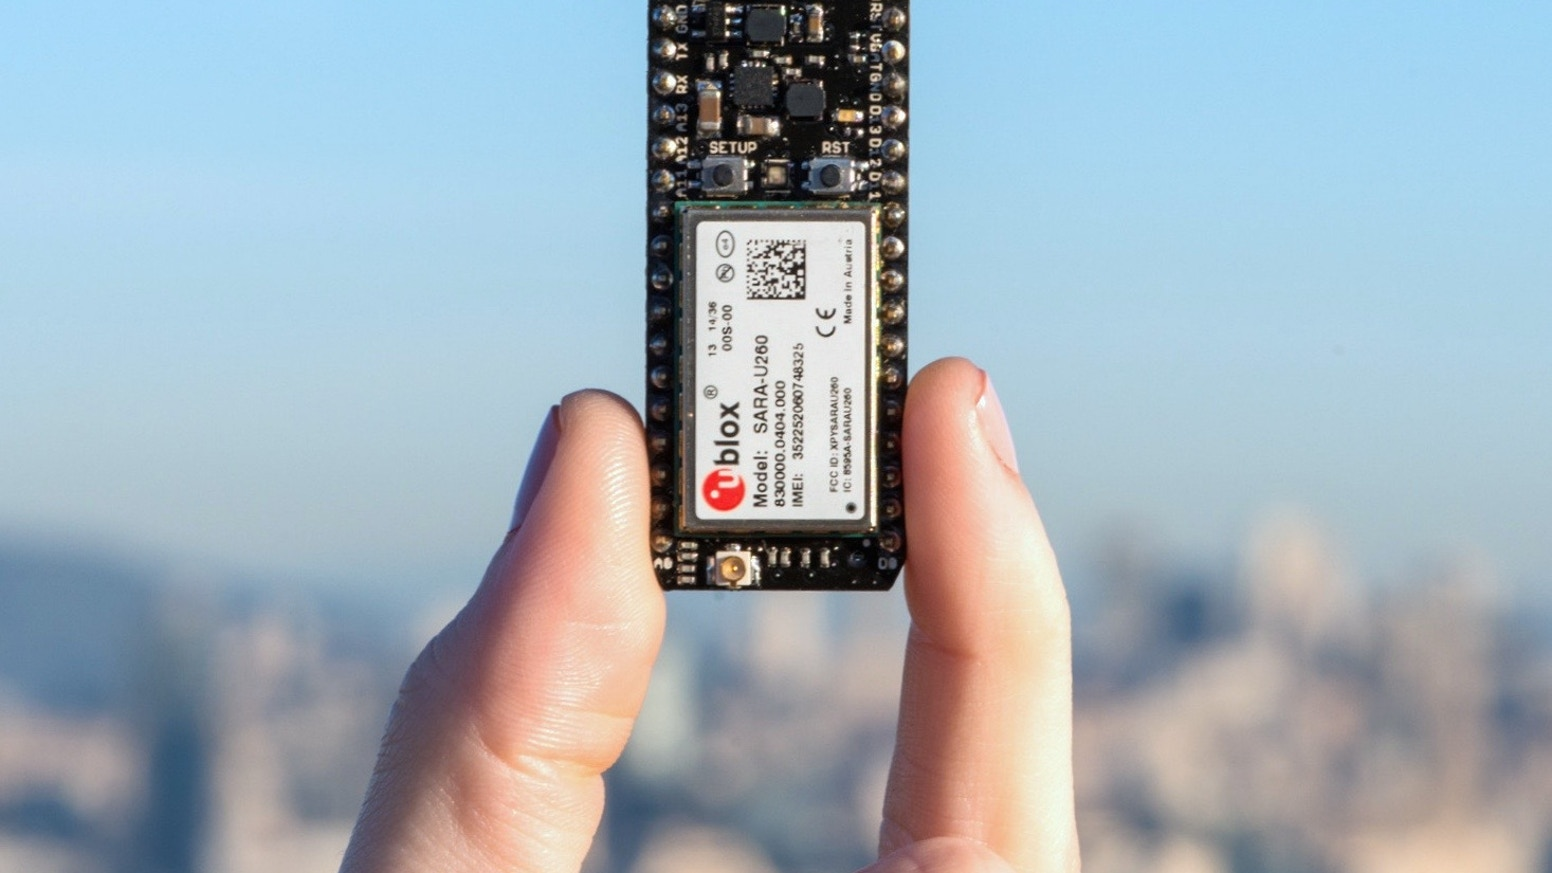 The Electron is an Arduino-like cellular development kit with a SIM card and affordable data plan from the creators of the Spark Core.